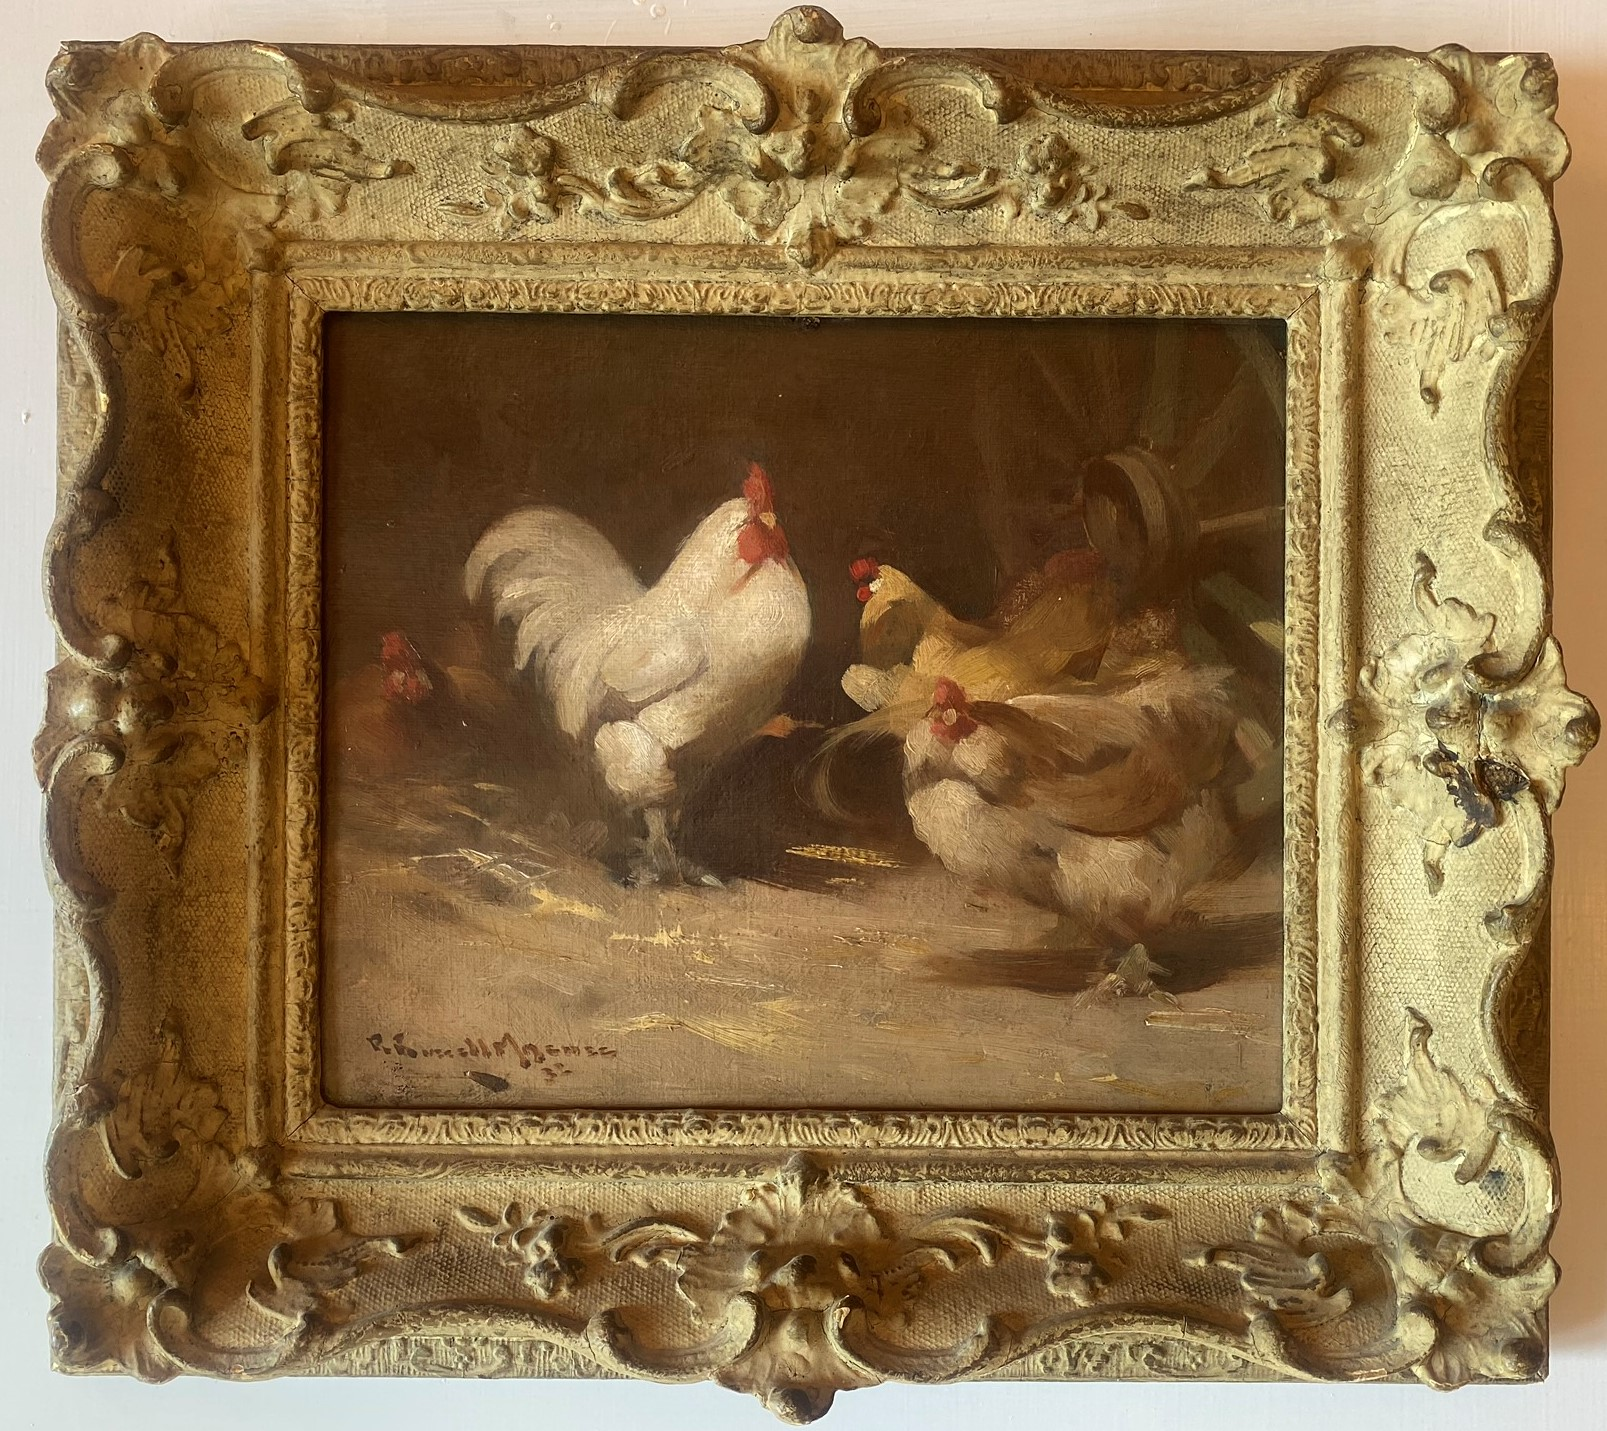 Original Signed Oil Painting. Robert Russel MacNee, 1880-1952 - On The Farm - Image 2 of 4